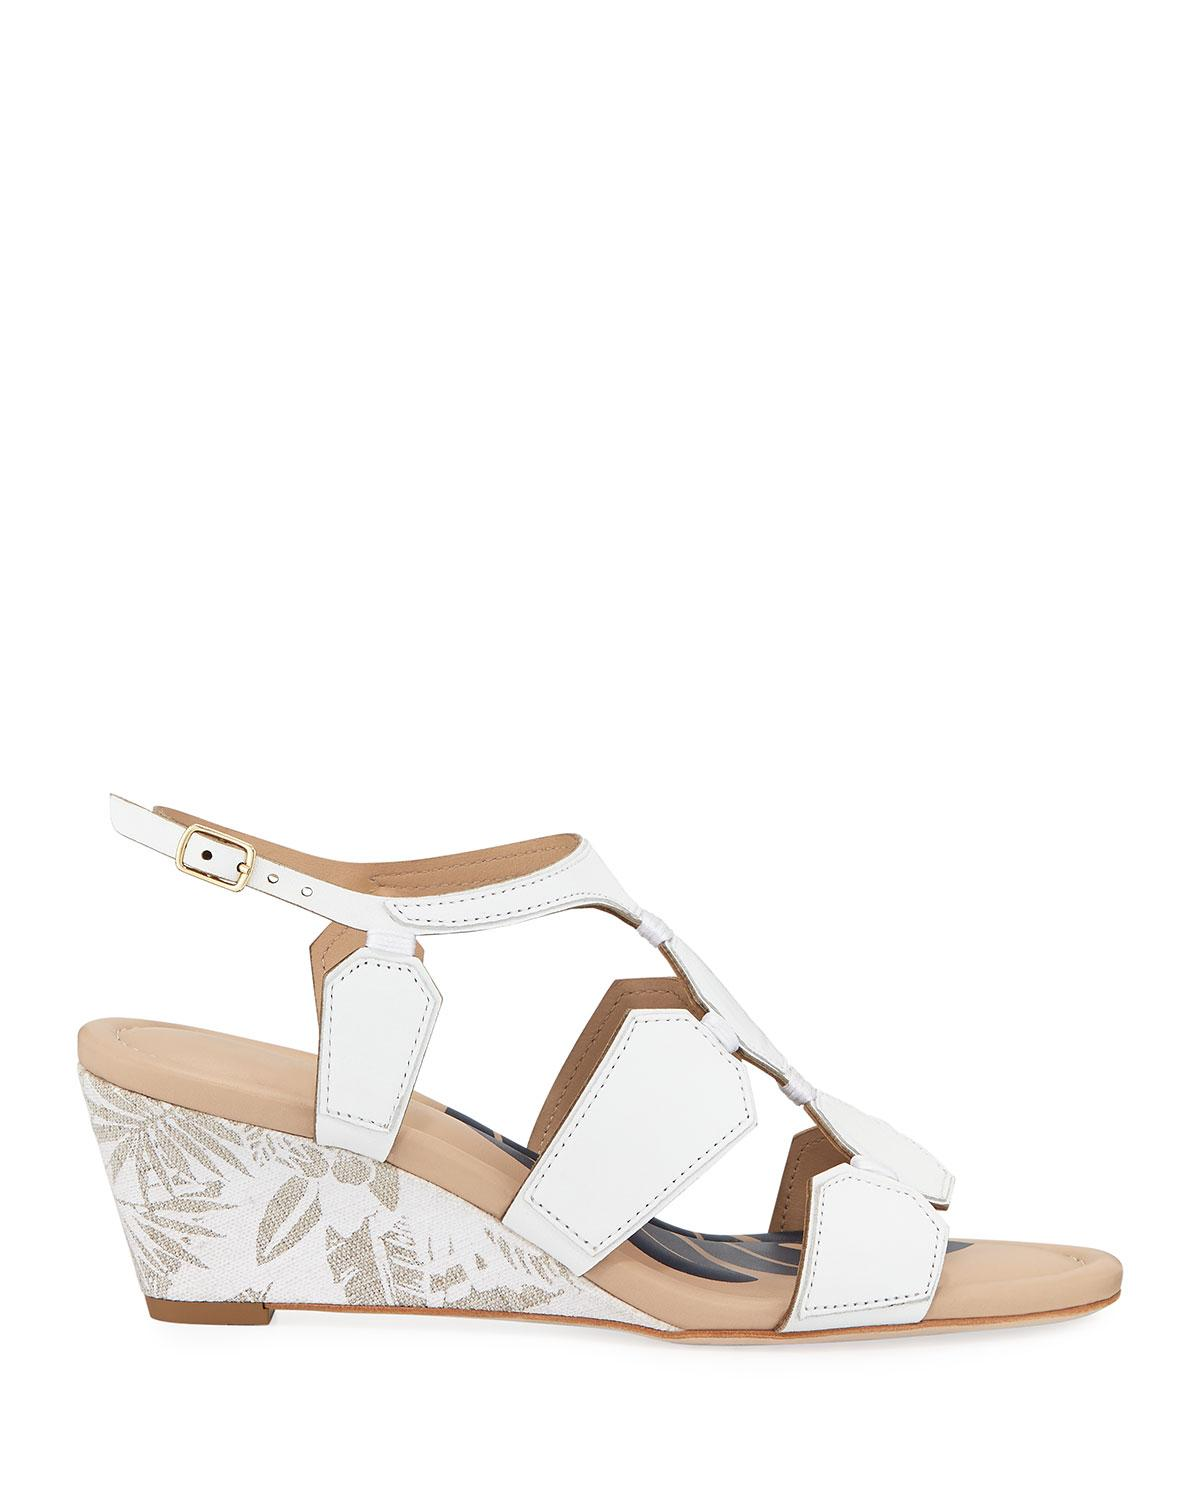 74e559661 Lyst - Tommy Bahama Ivy Beach Geometric Wedge Sandals in White - Save 54%